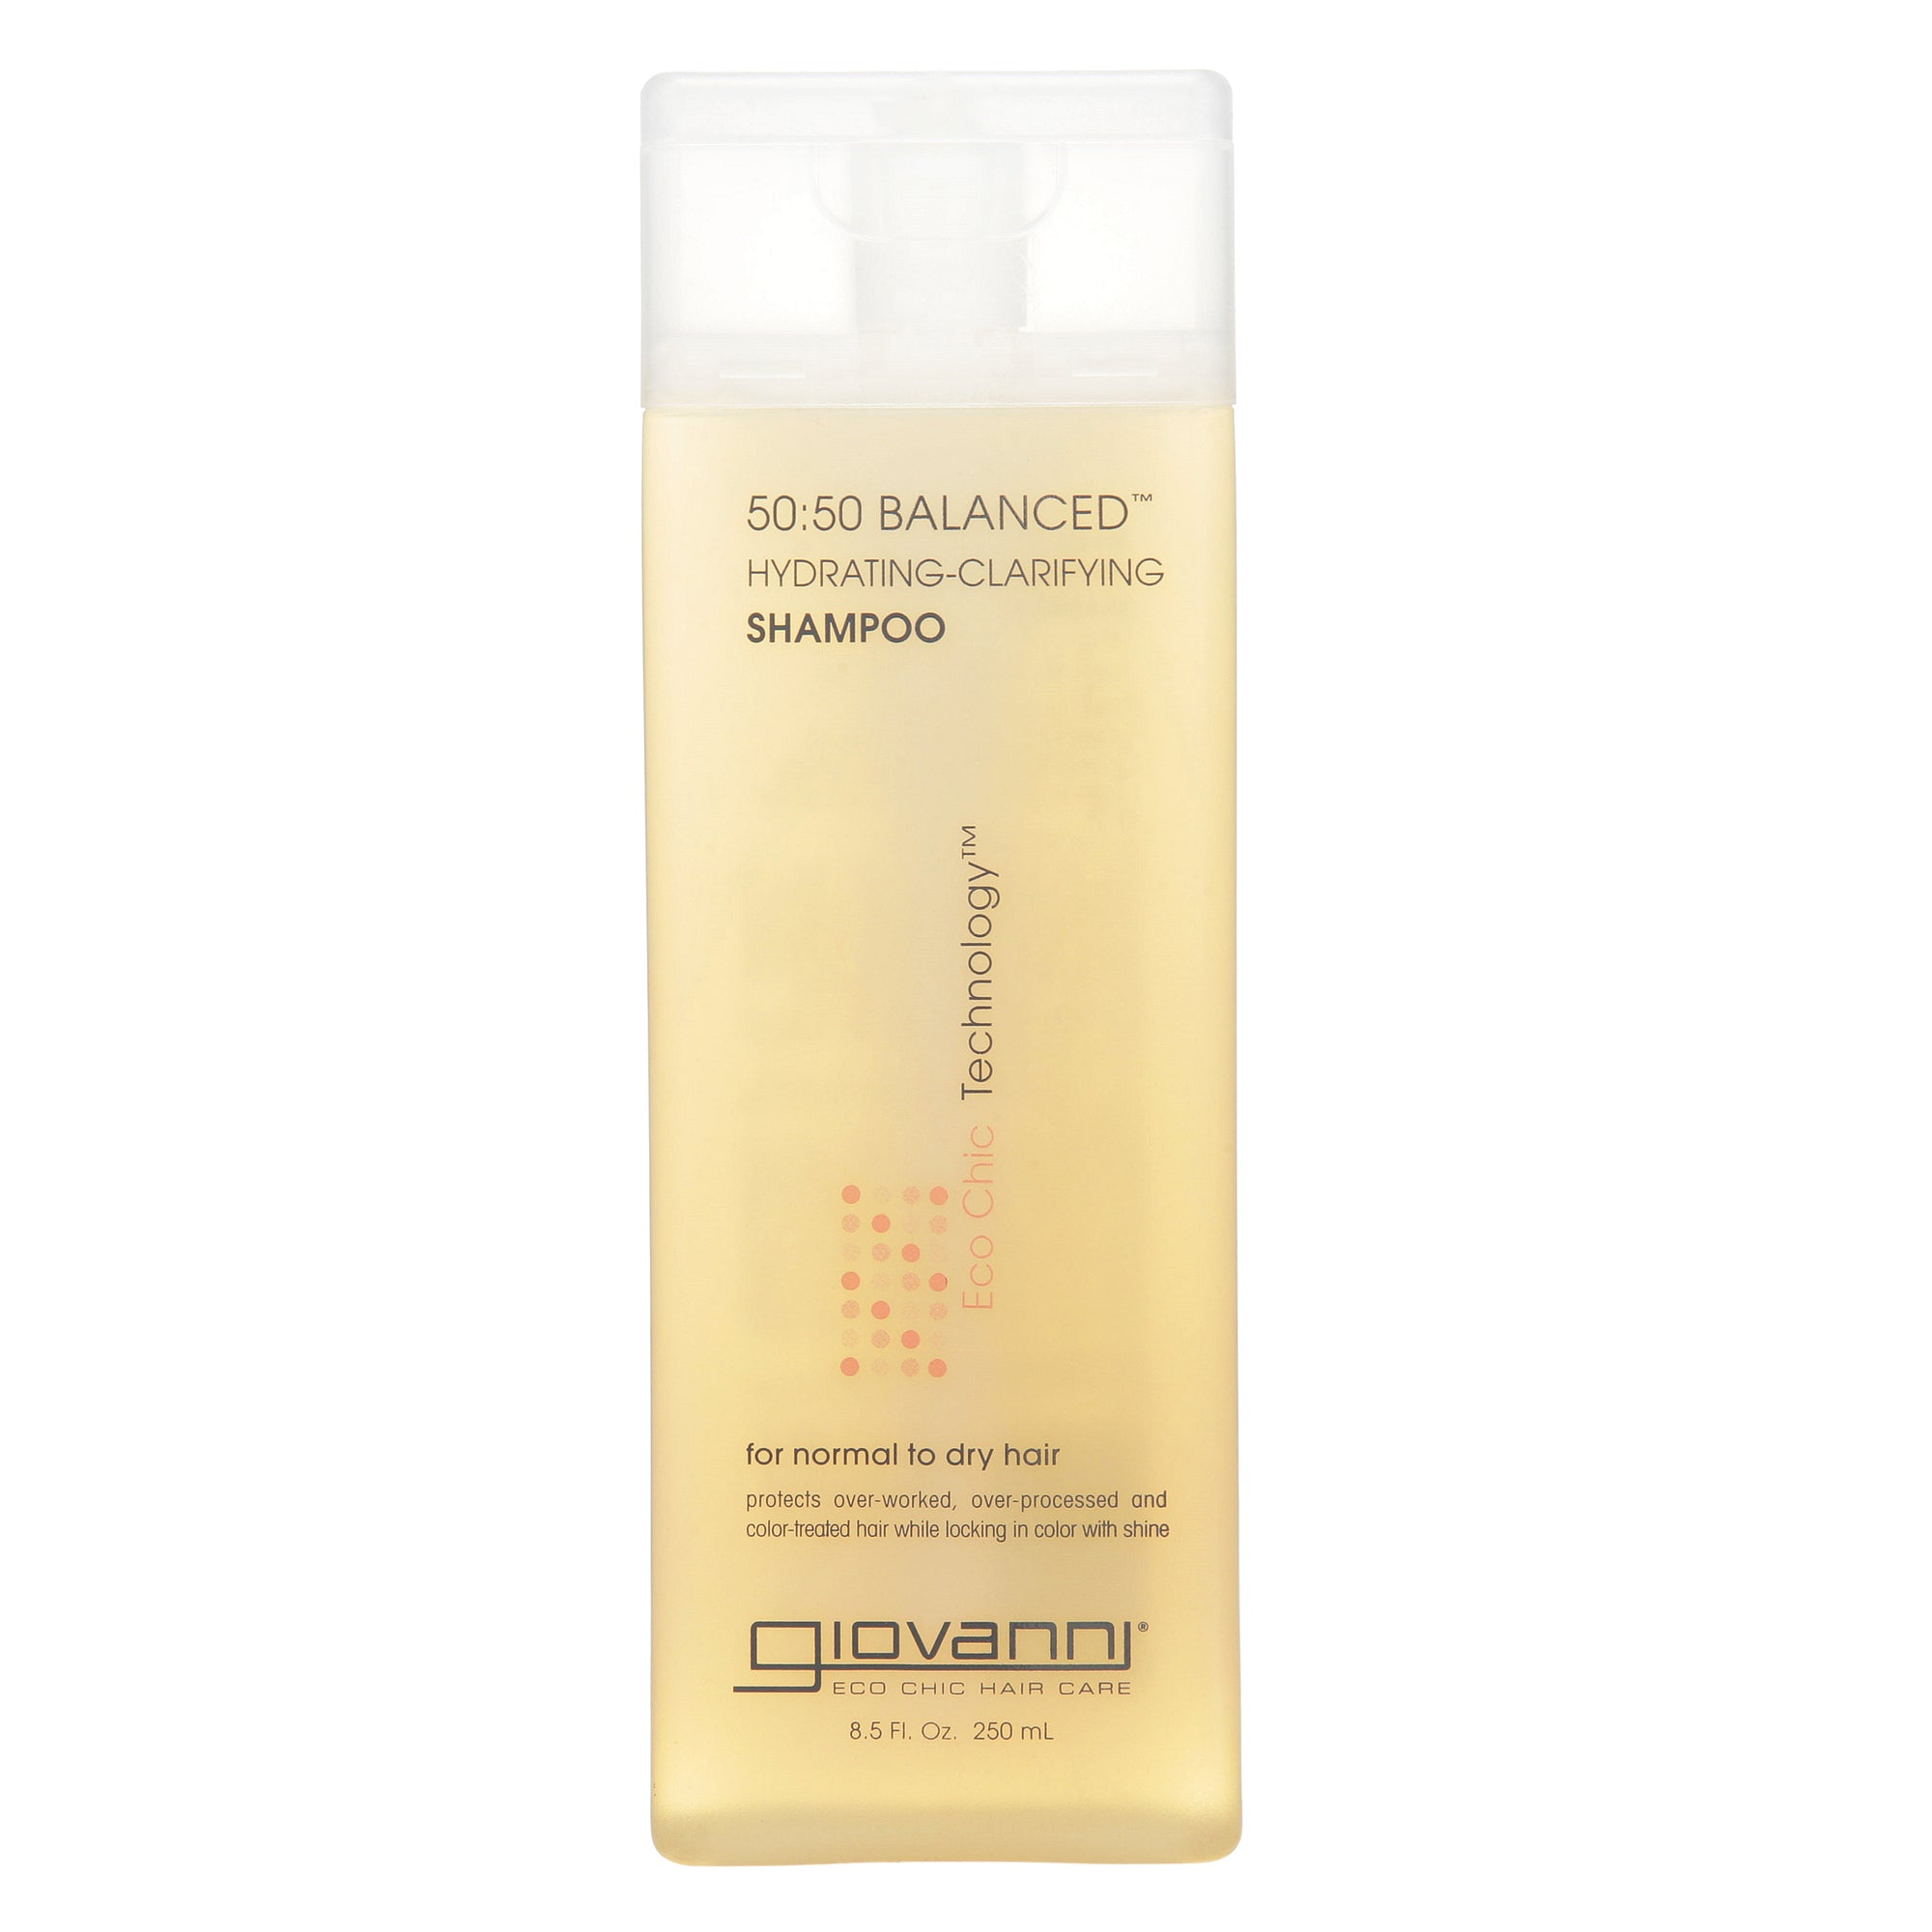 50:50 Balanced™ Hydrating-Clarifying Shampoo